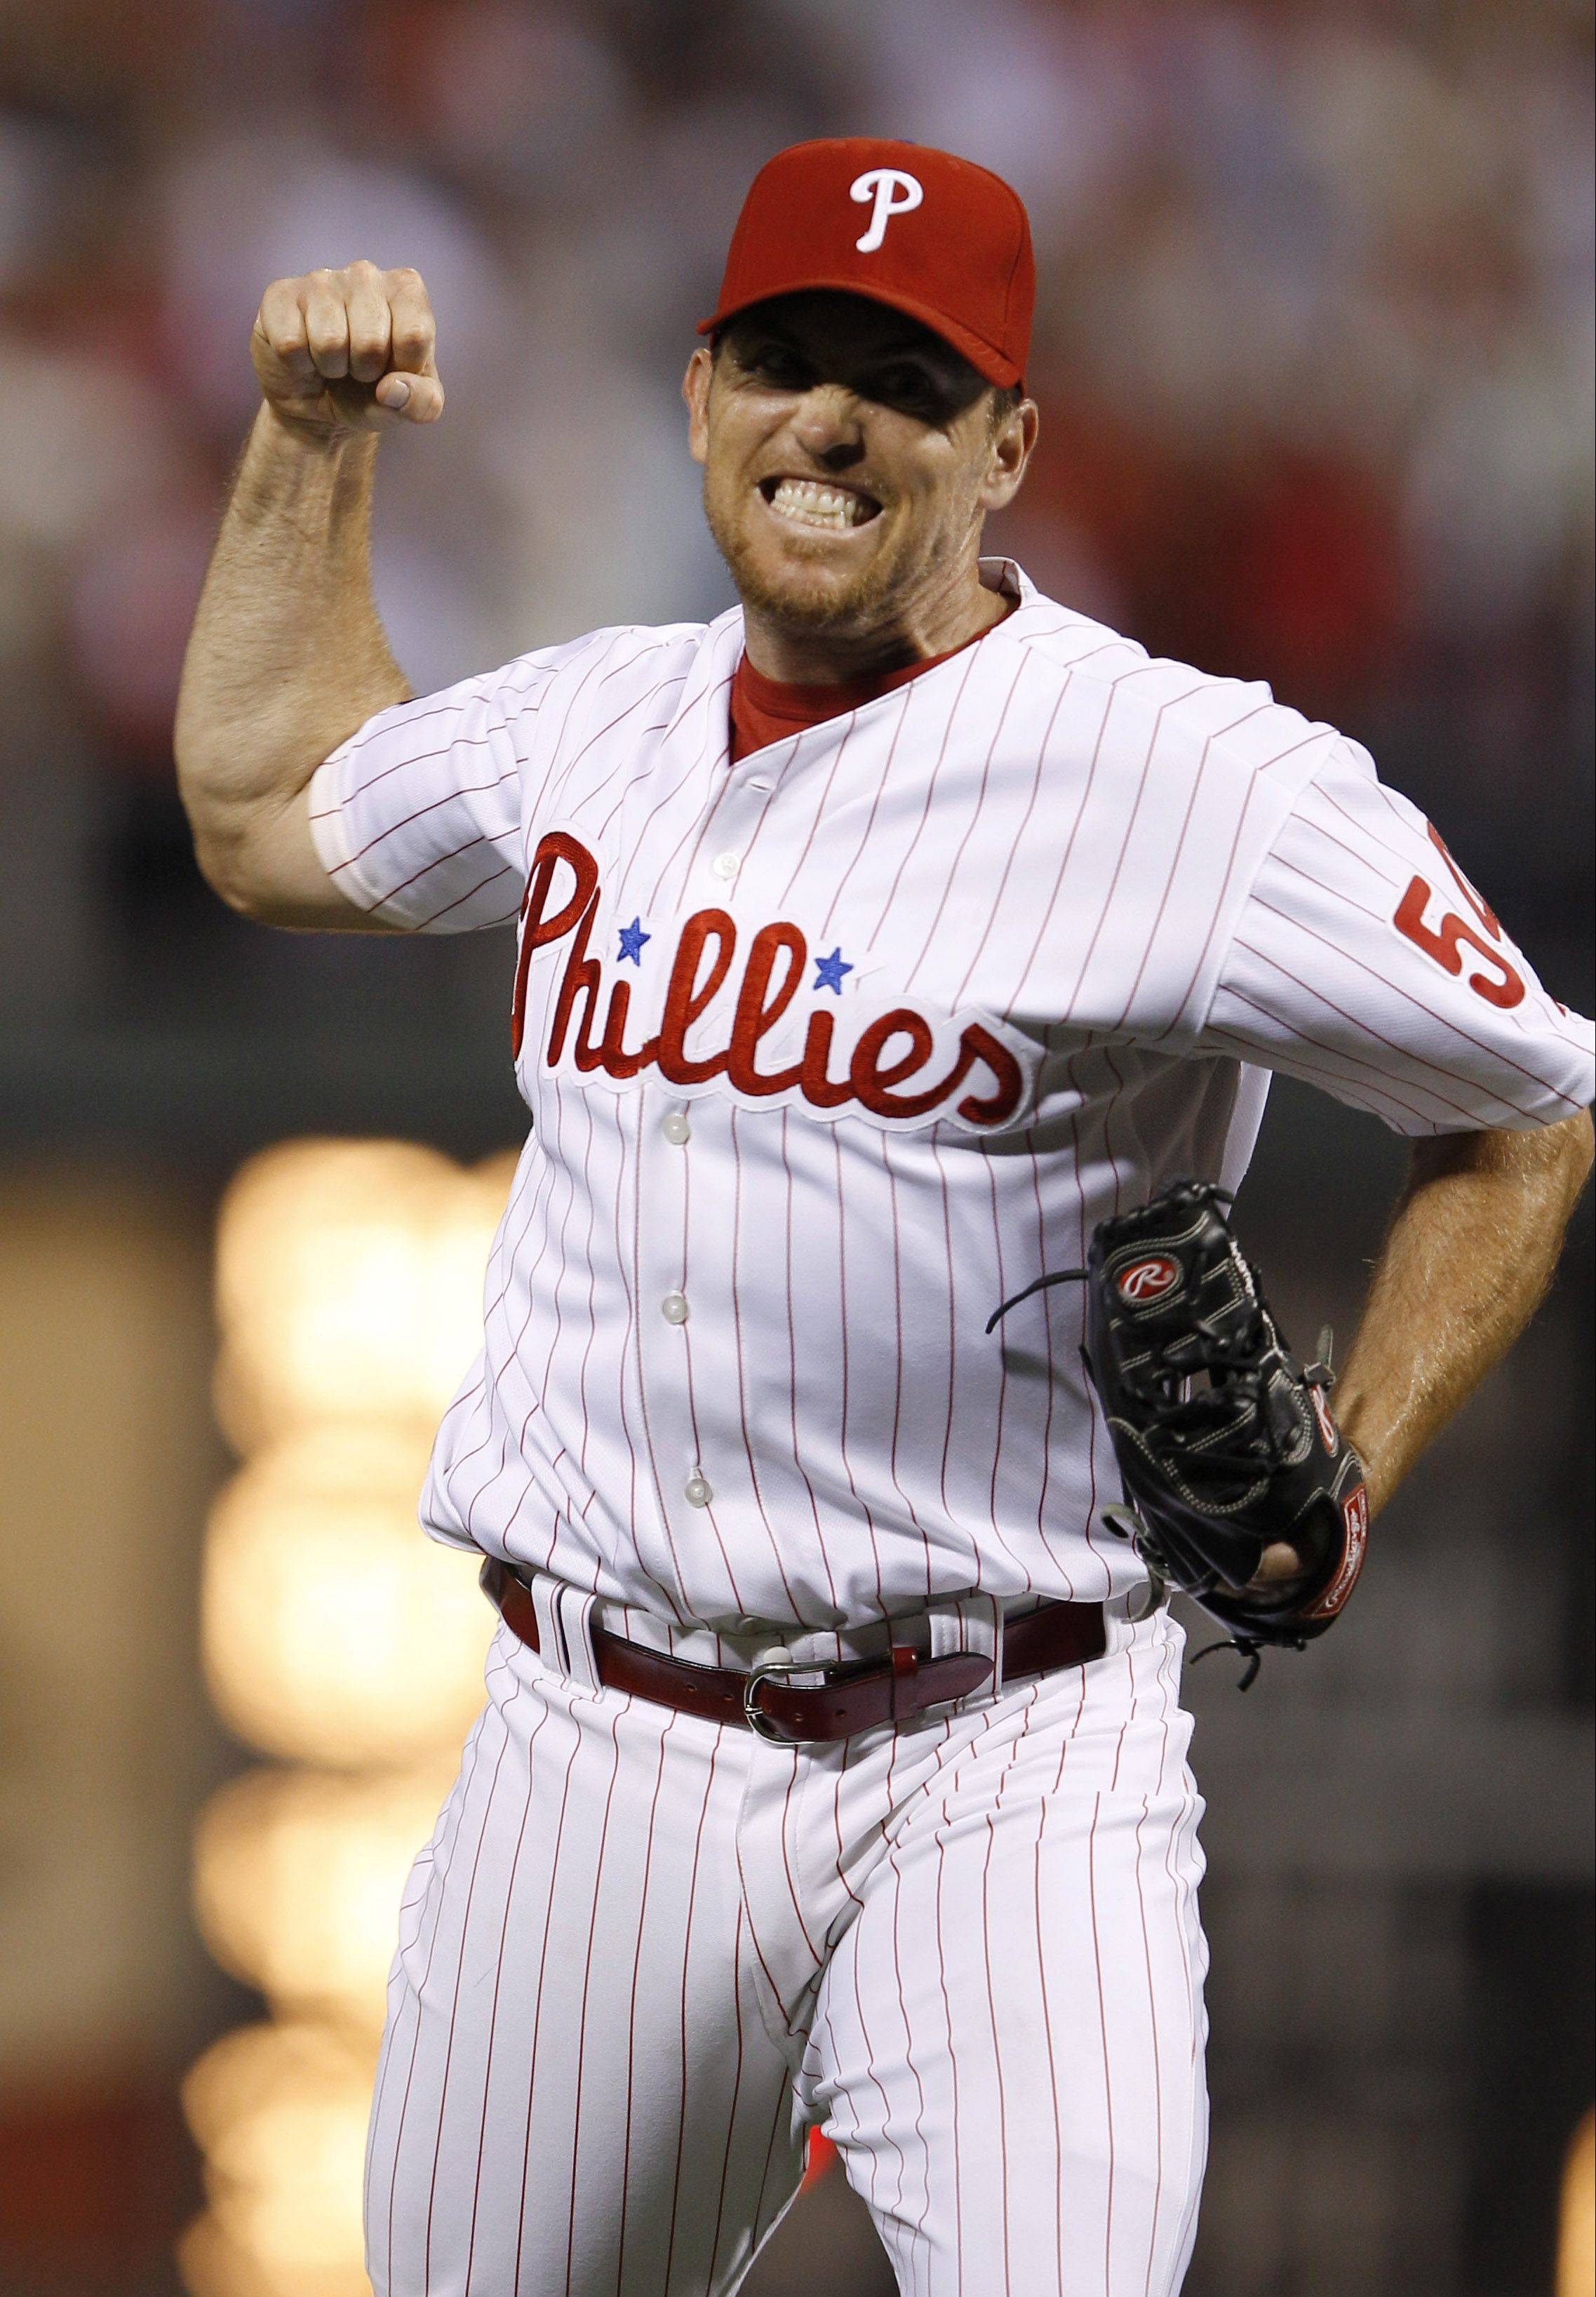 Brad Lidge, a cousin of Barrington's catcher Ryan Lidge, reacts during a game against the Atlanta Braves.